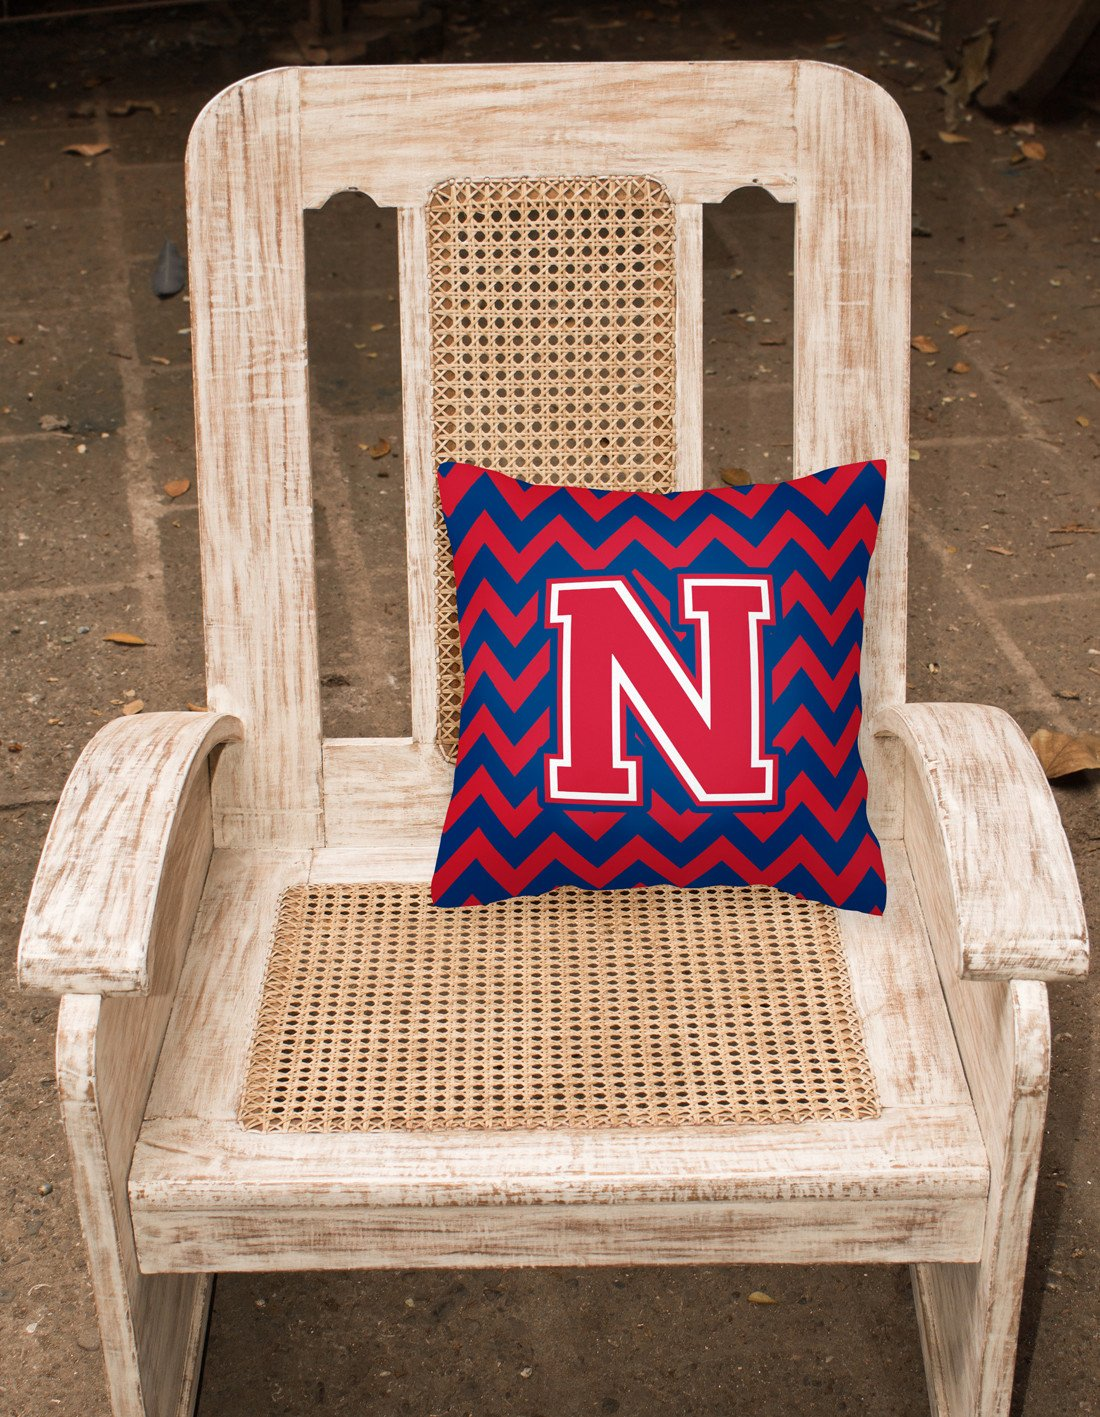 Letter N Chevron Yale Blue and Crimson Fabric Decorative Pillow CJ1054-NPW1414 by Caroline's Treasures